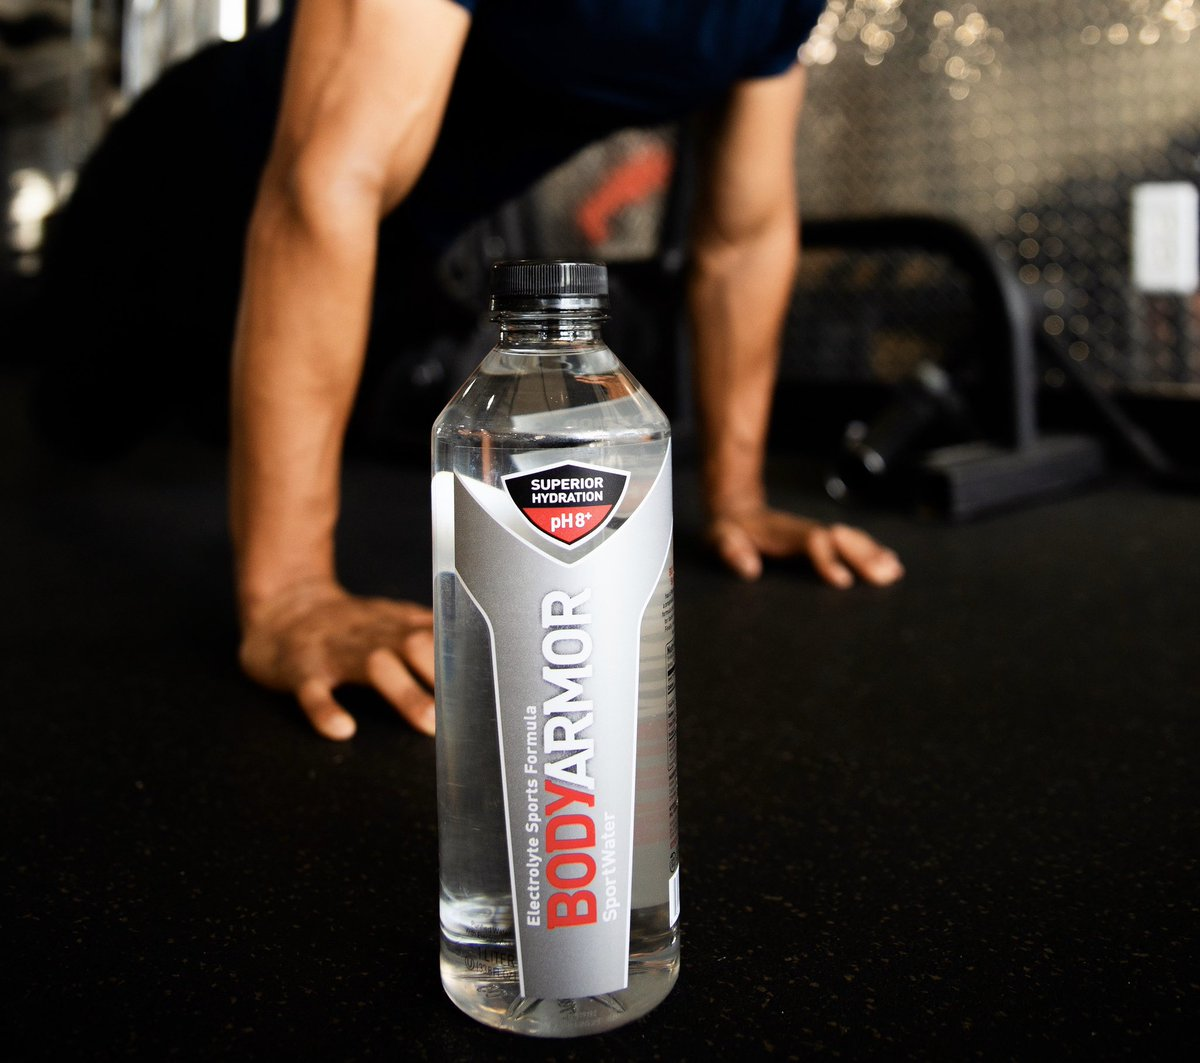 The Water Made For Athletes 💧 #SuperiorHydration